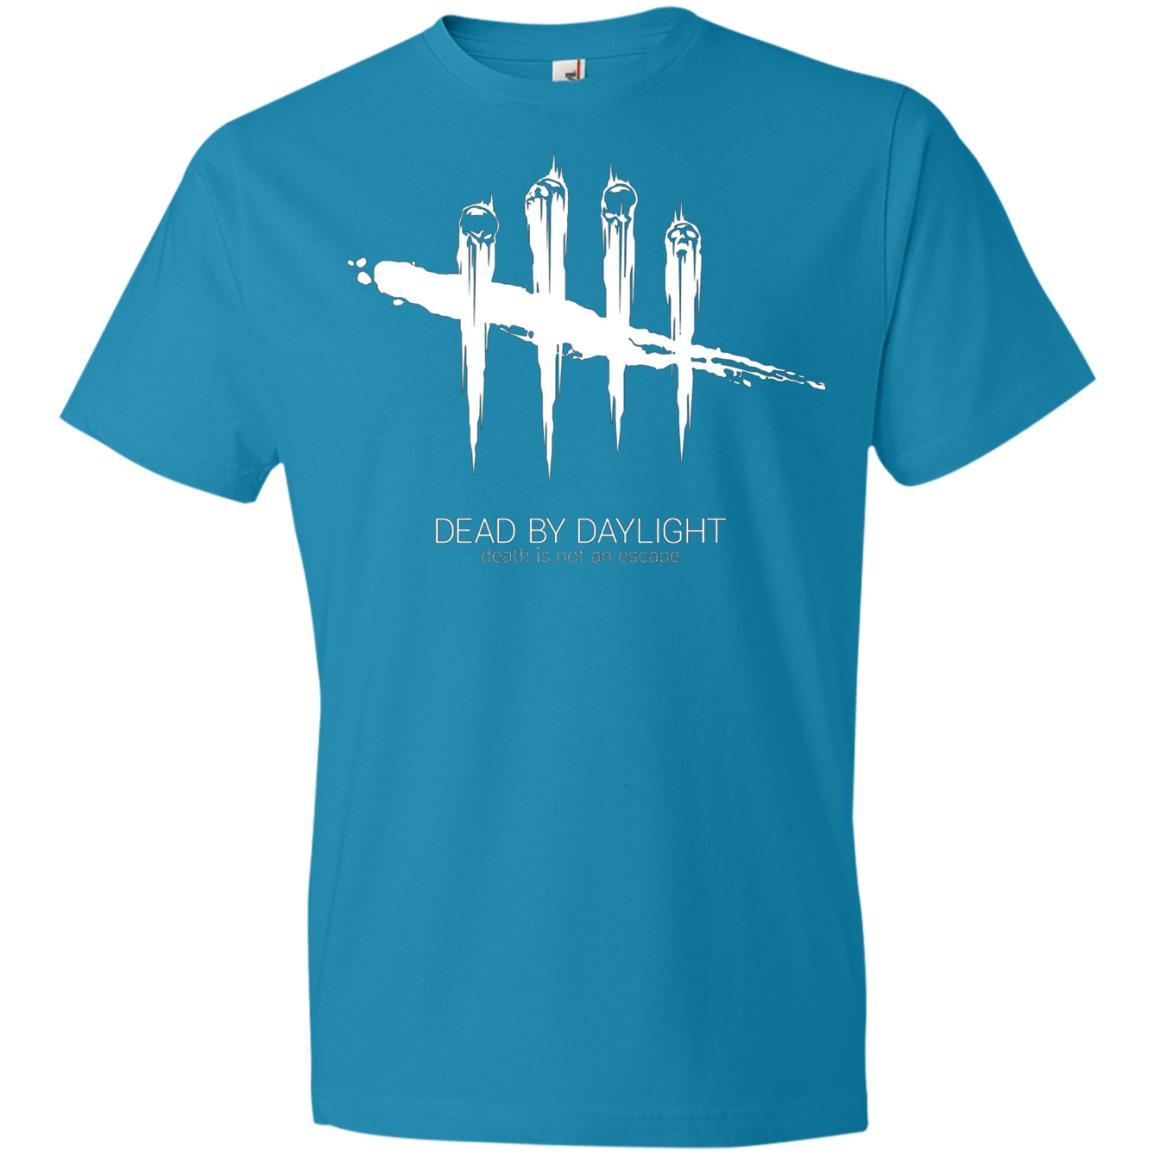 Dead By Daylight - Anvil Lightweight T-Shirt Style / Color / Size